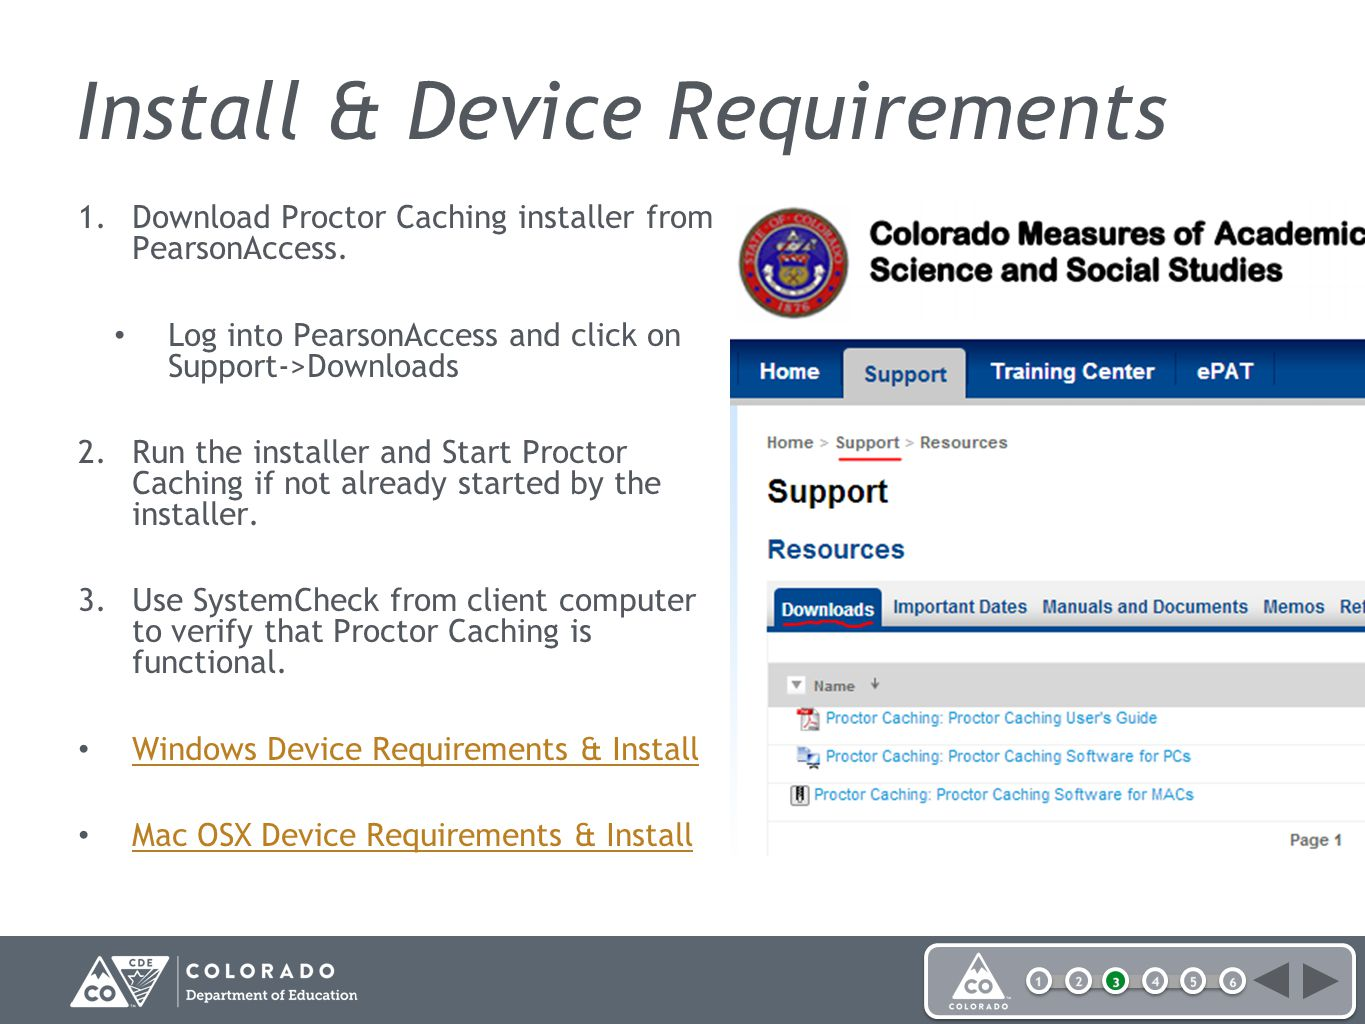 Install & Device Requirements 1.Download Proctor Caching installer from PearsonAccess.